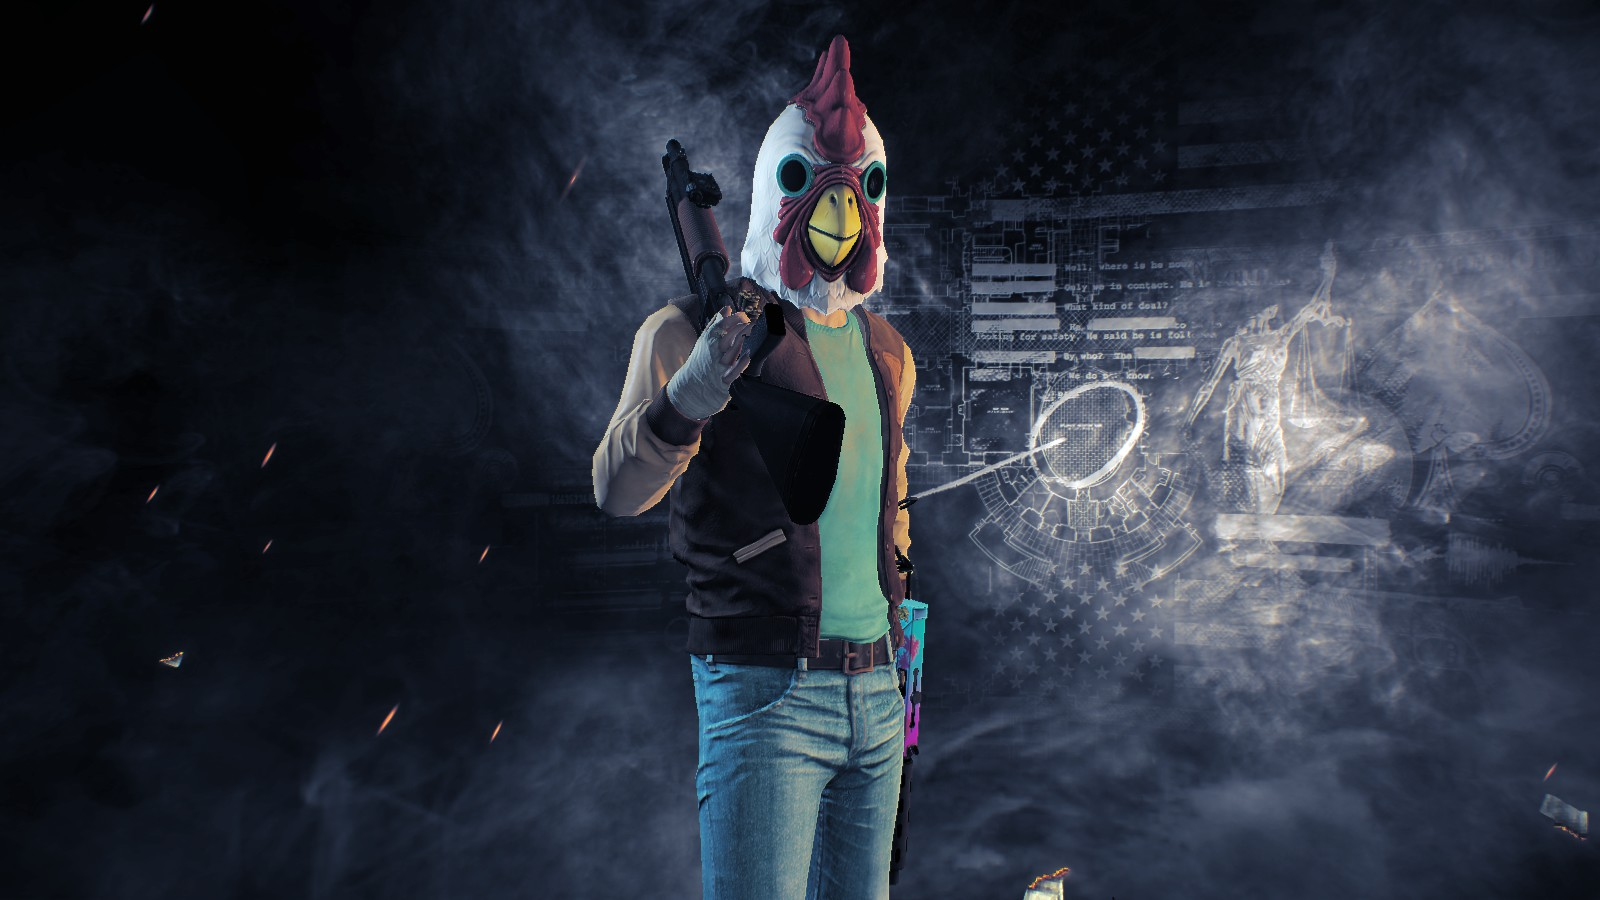 PAYDAY 2 Crossover HOTLINE MIAMI. - Payday 2 Кроссовер